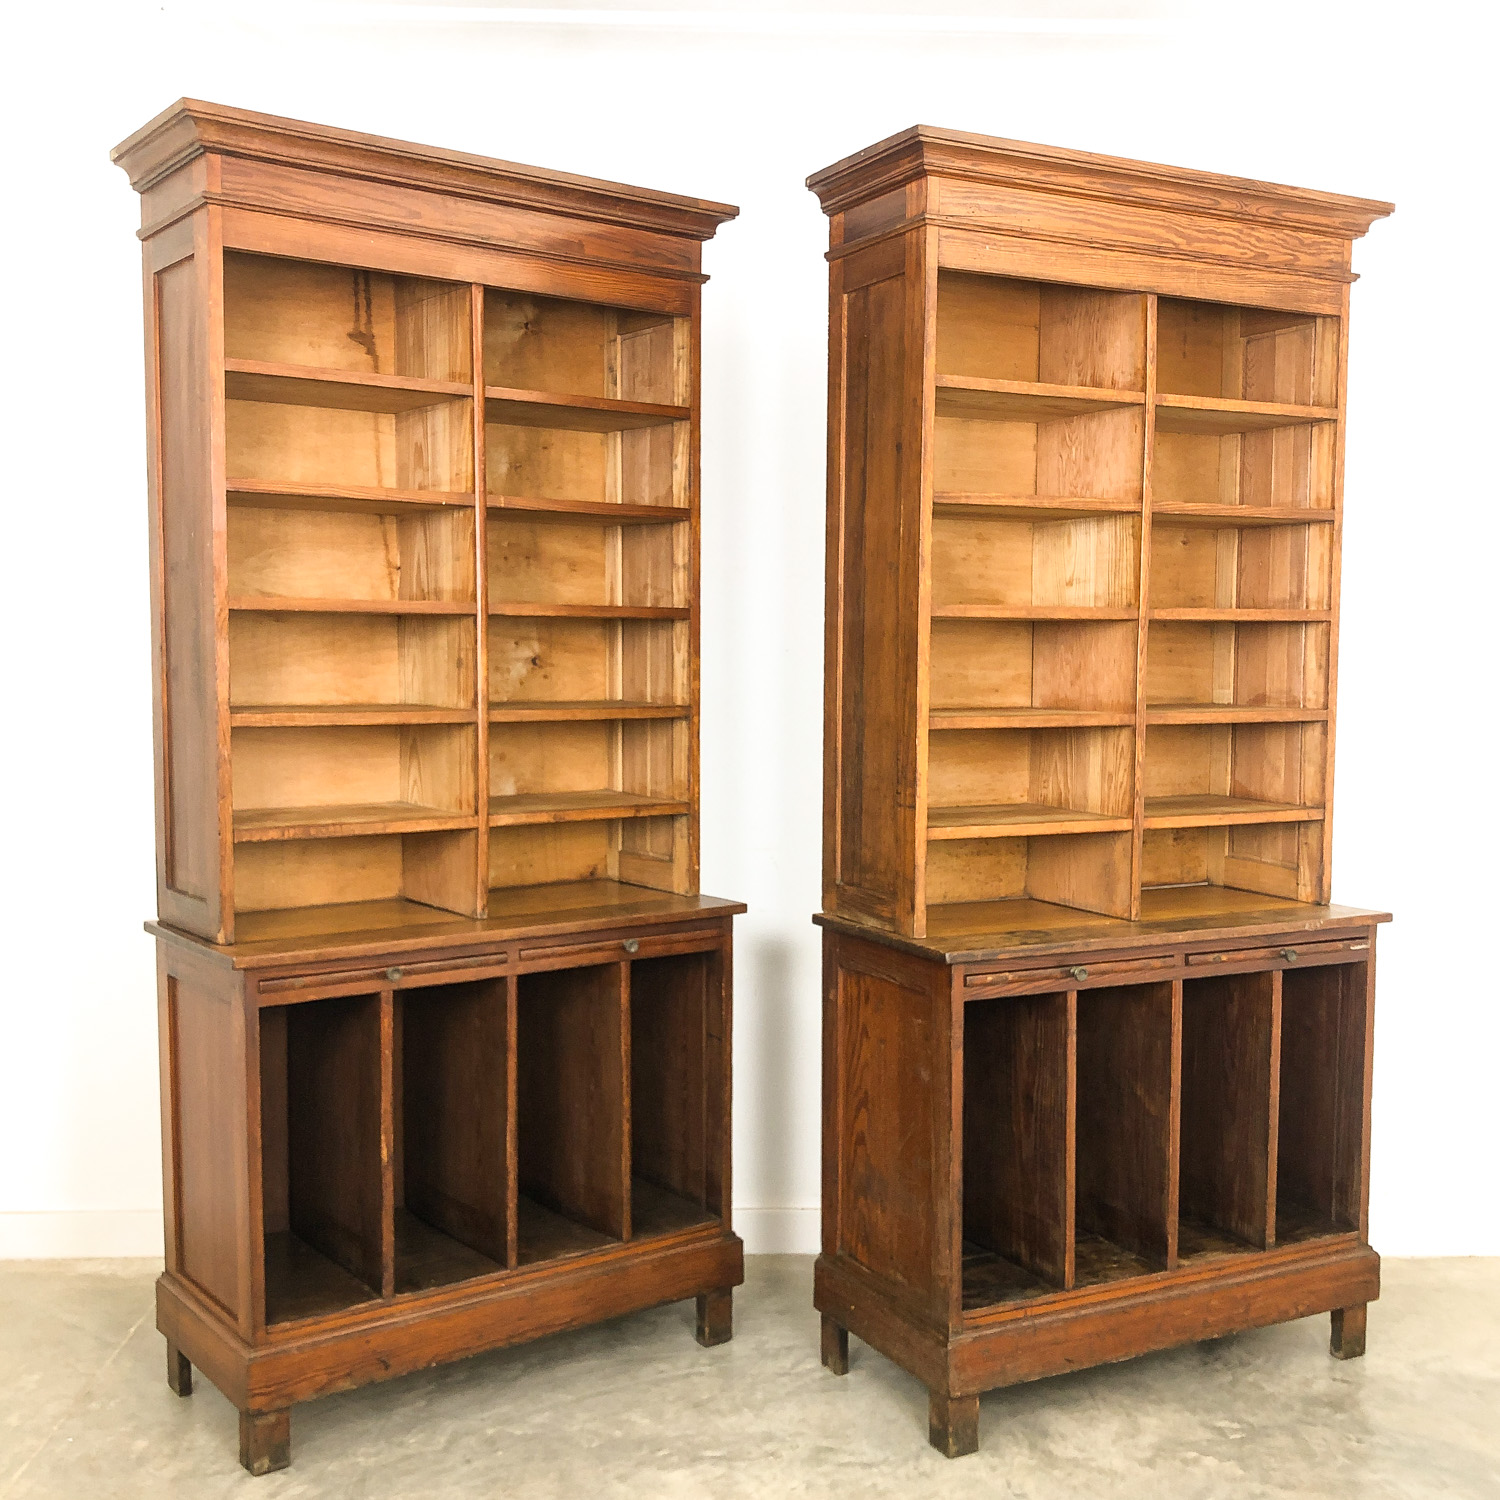 Pair of antique open library bookcases